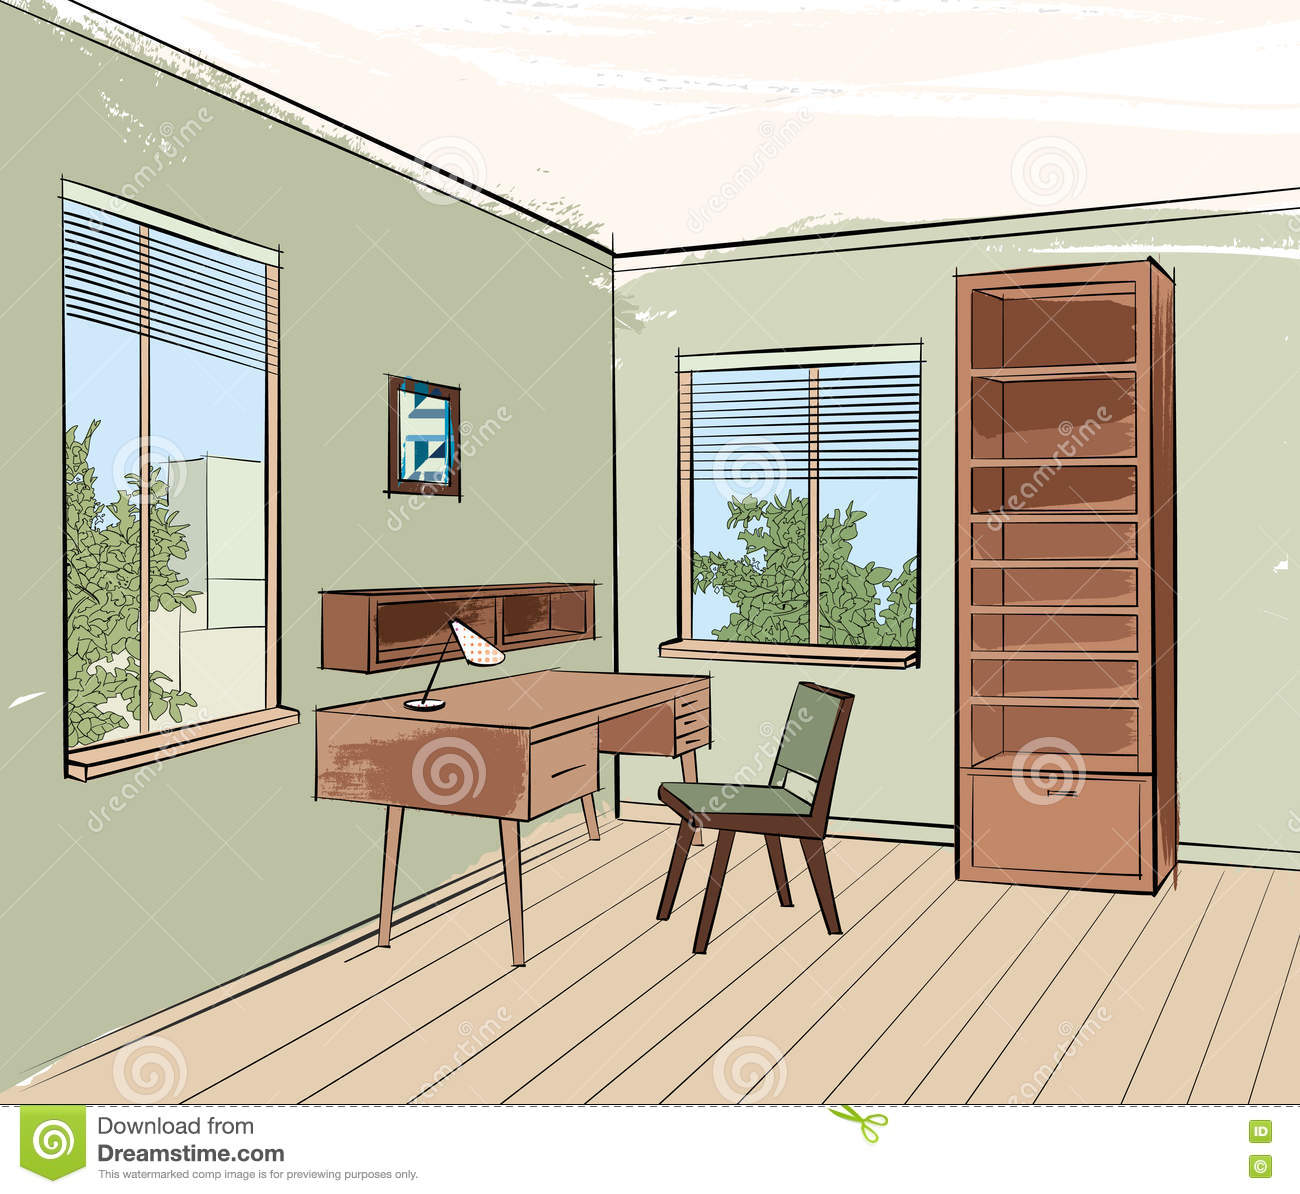 Home Interior Work Place Furniture Living Room Sketch